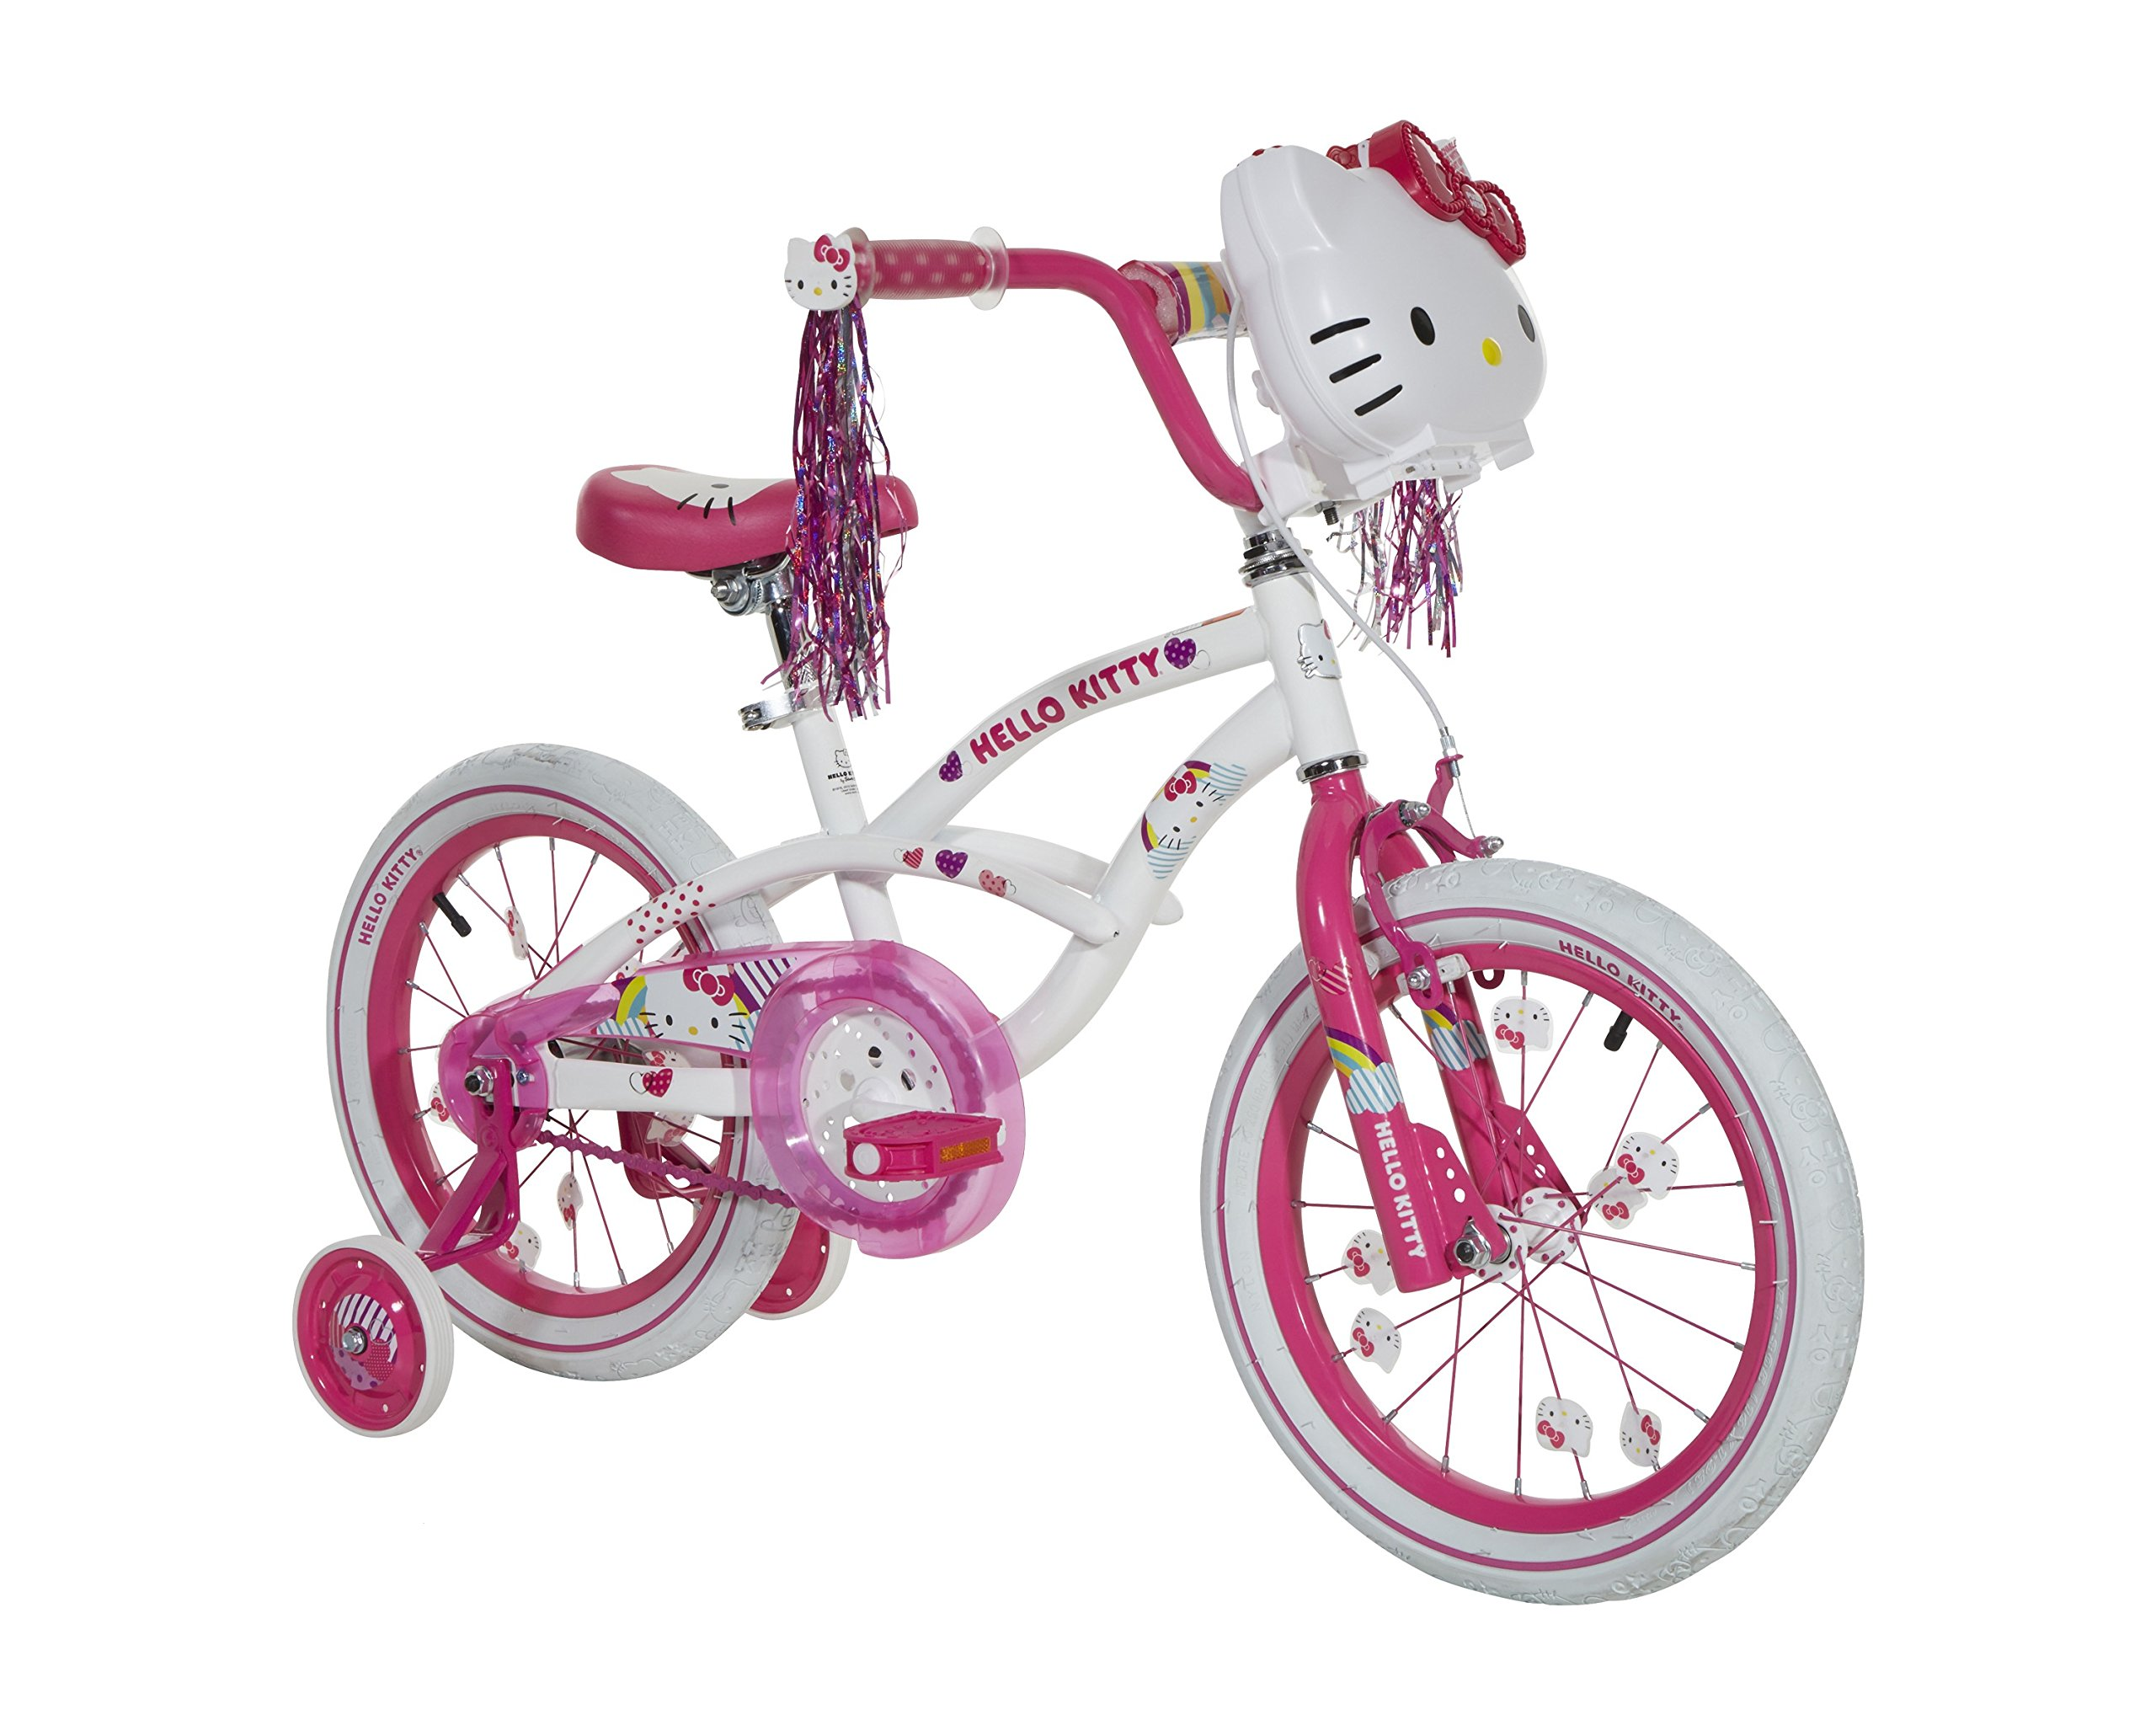 Hello Kitty Girls Bike with Light Up Case, White/pink, 16'' by Hello Kitty (Image #1)